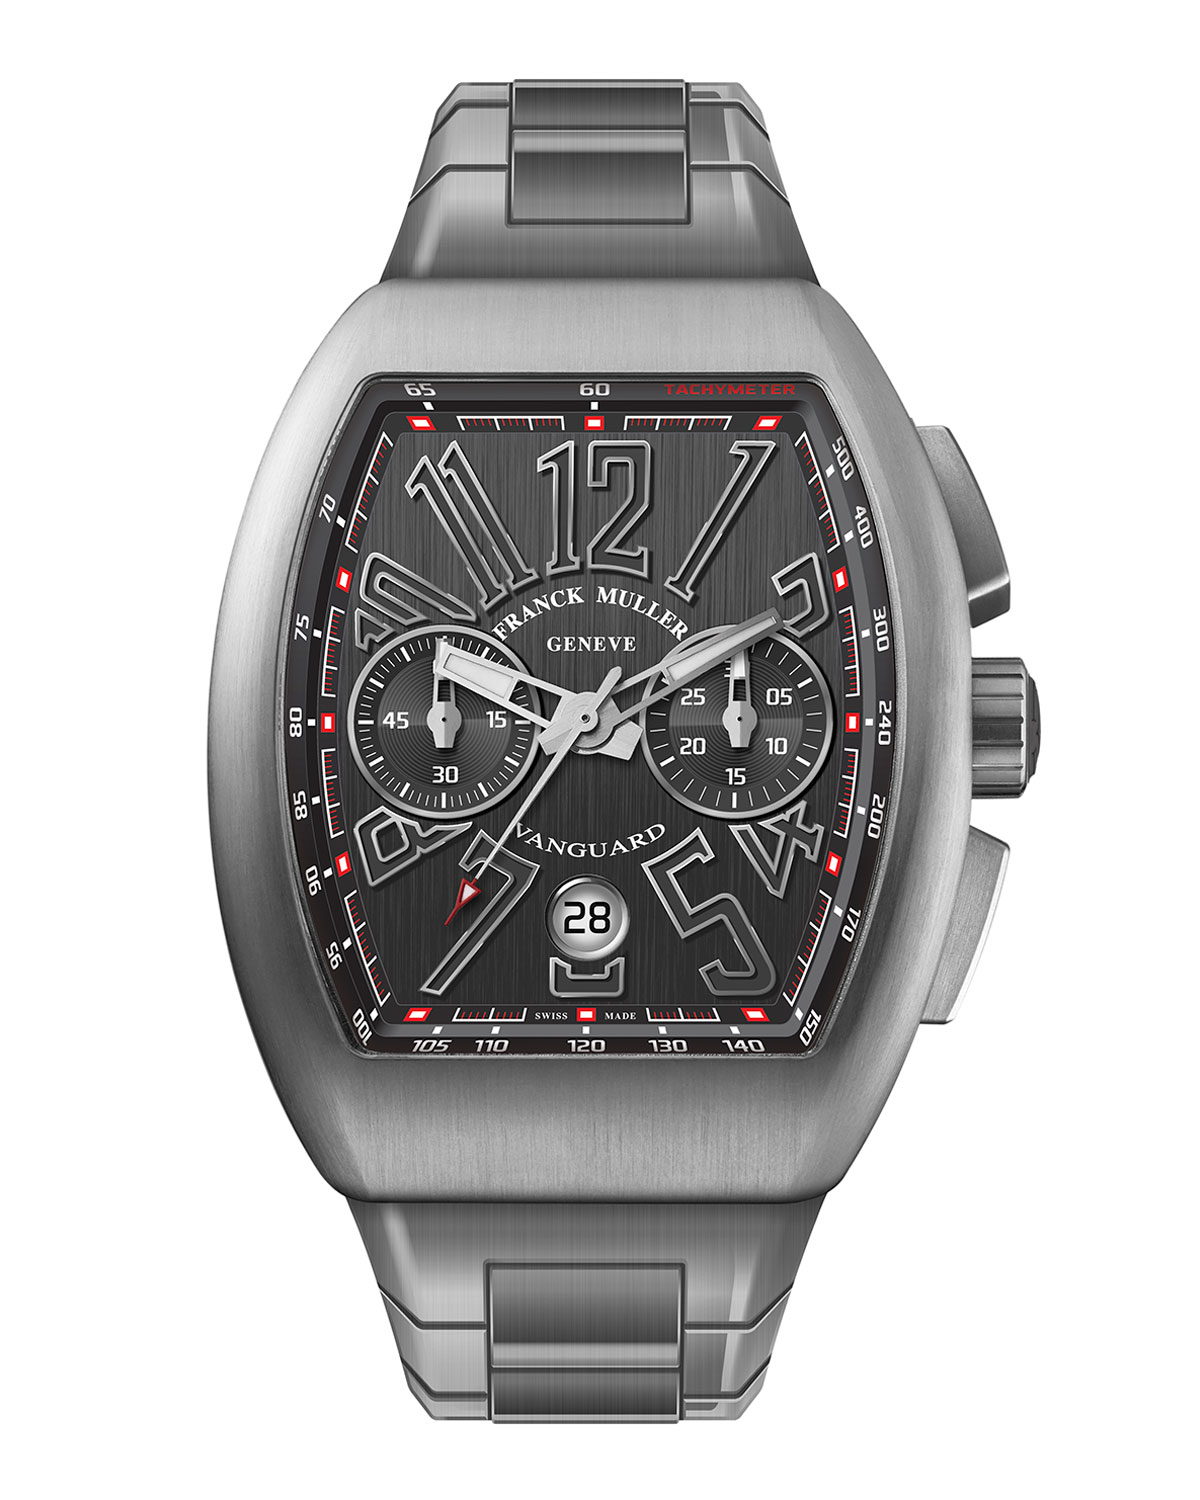 Vanguard Automatic Chronograph Watch